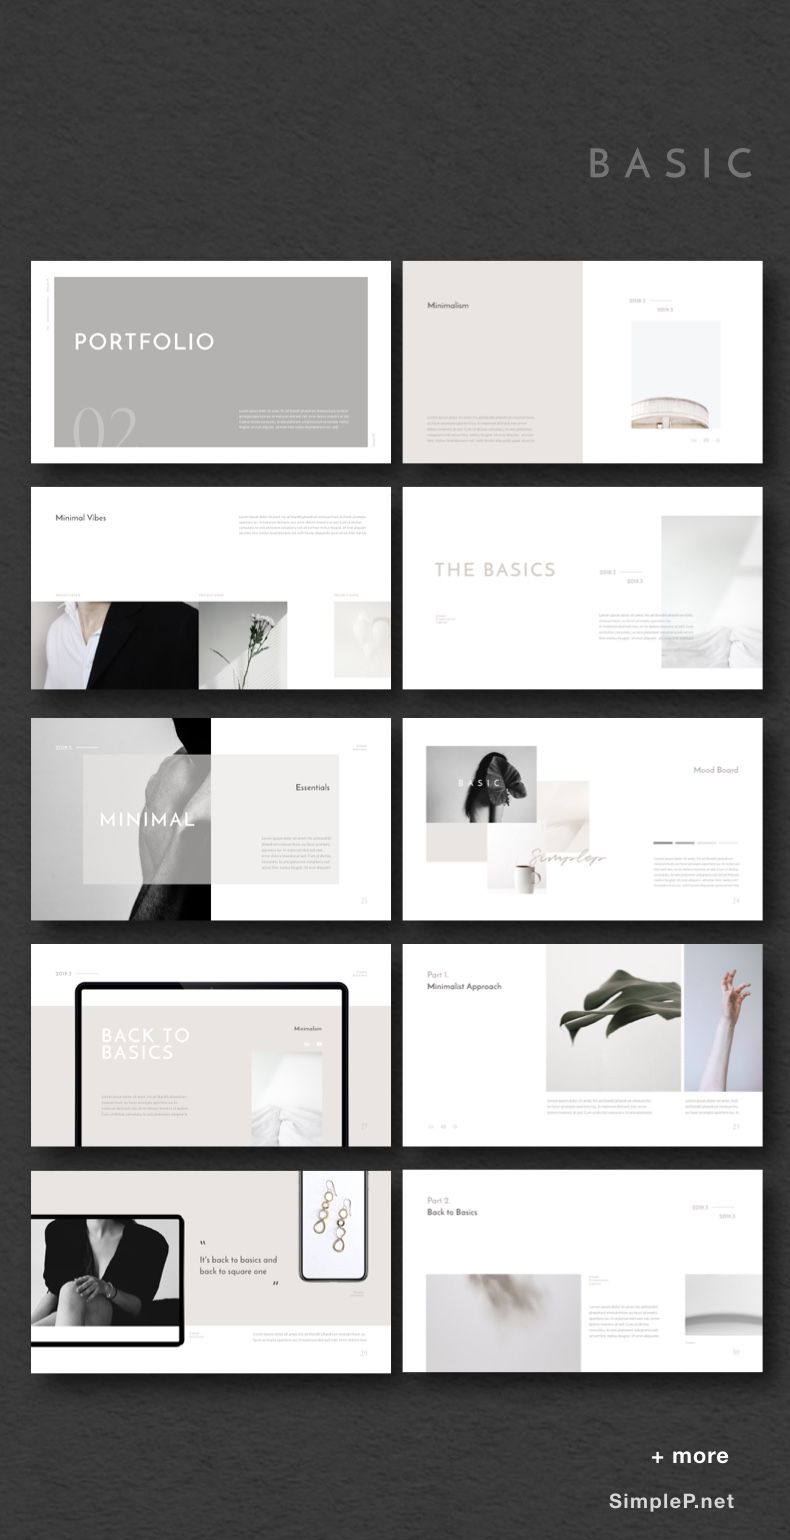 Simple & Minimal Presentation Template #ppt #powerpoint #powerpoints #basic #portfolio #presentation #template #moodboard #templates #pitchdeck #simplep #AD